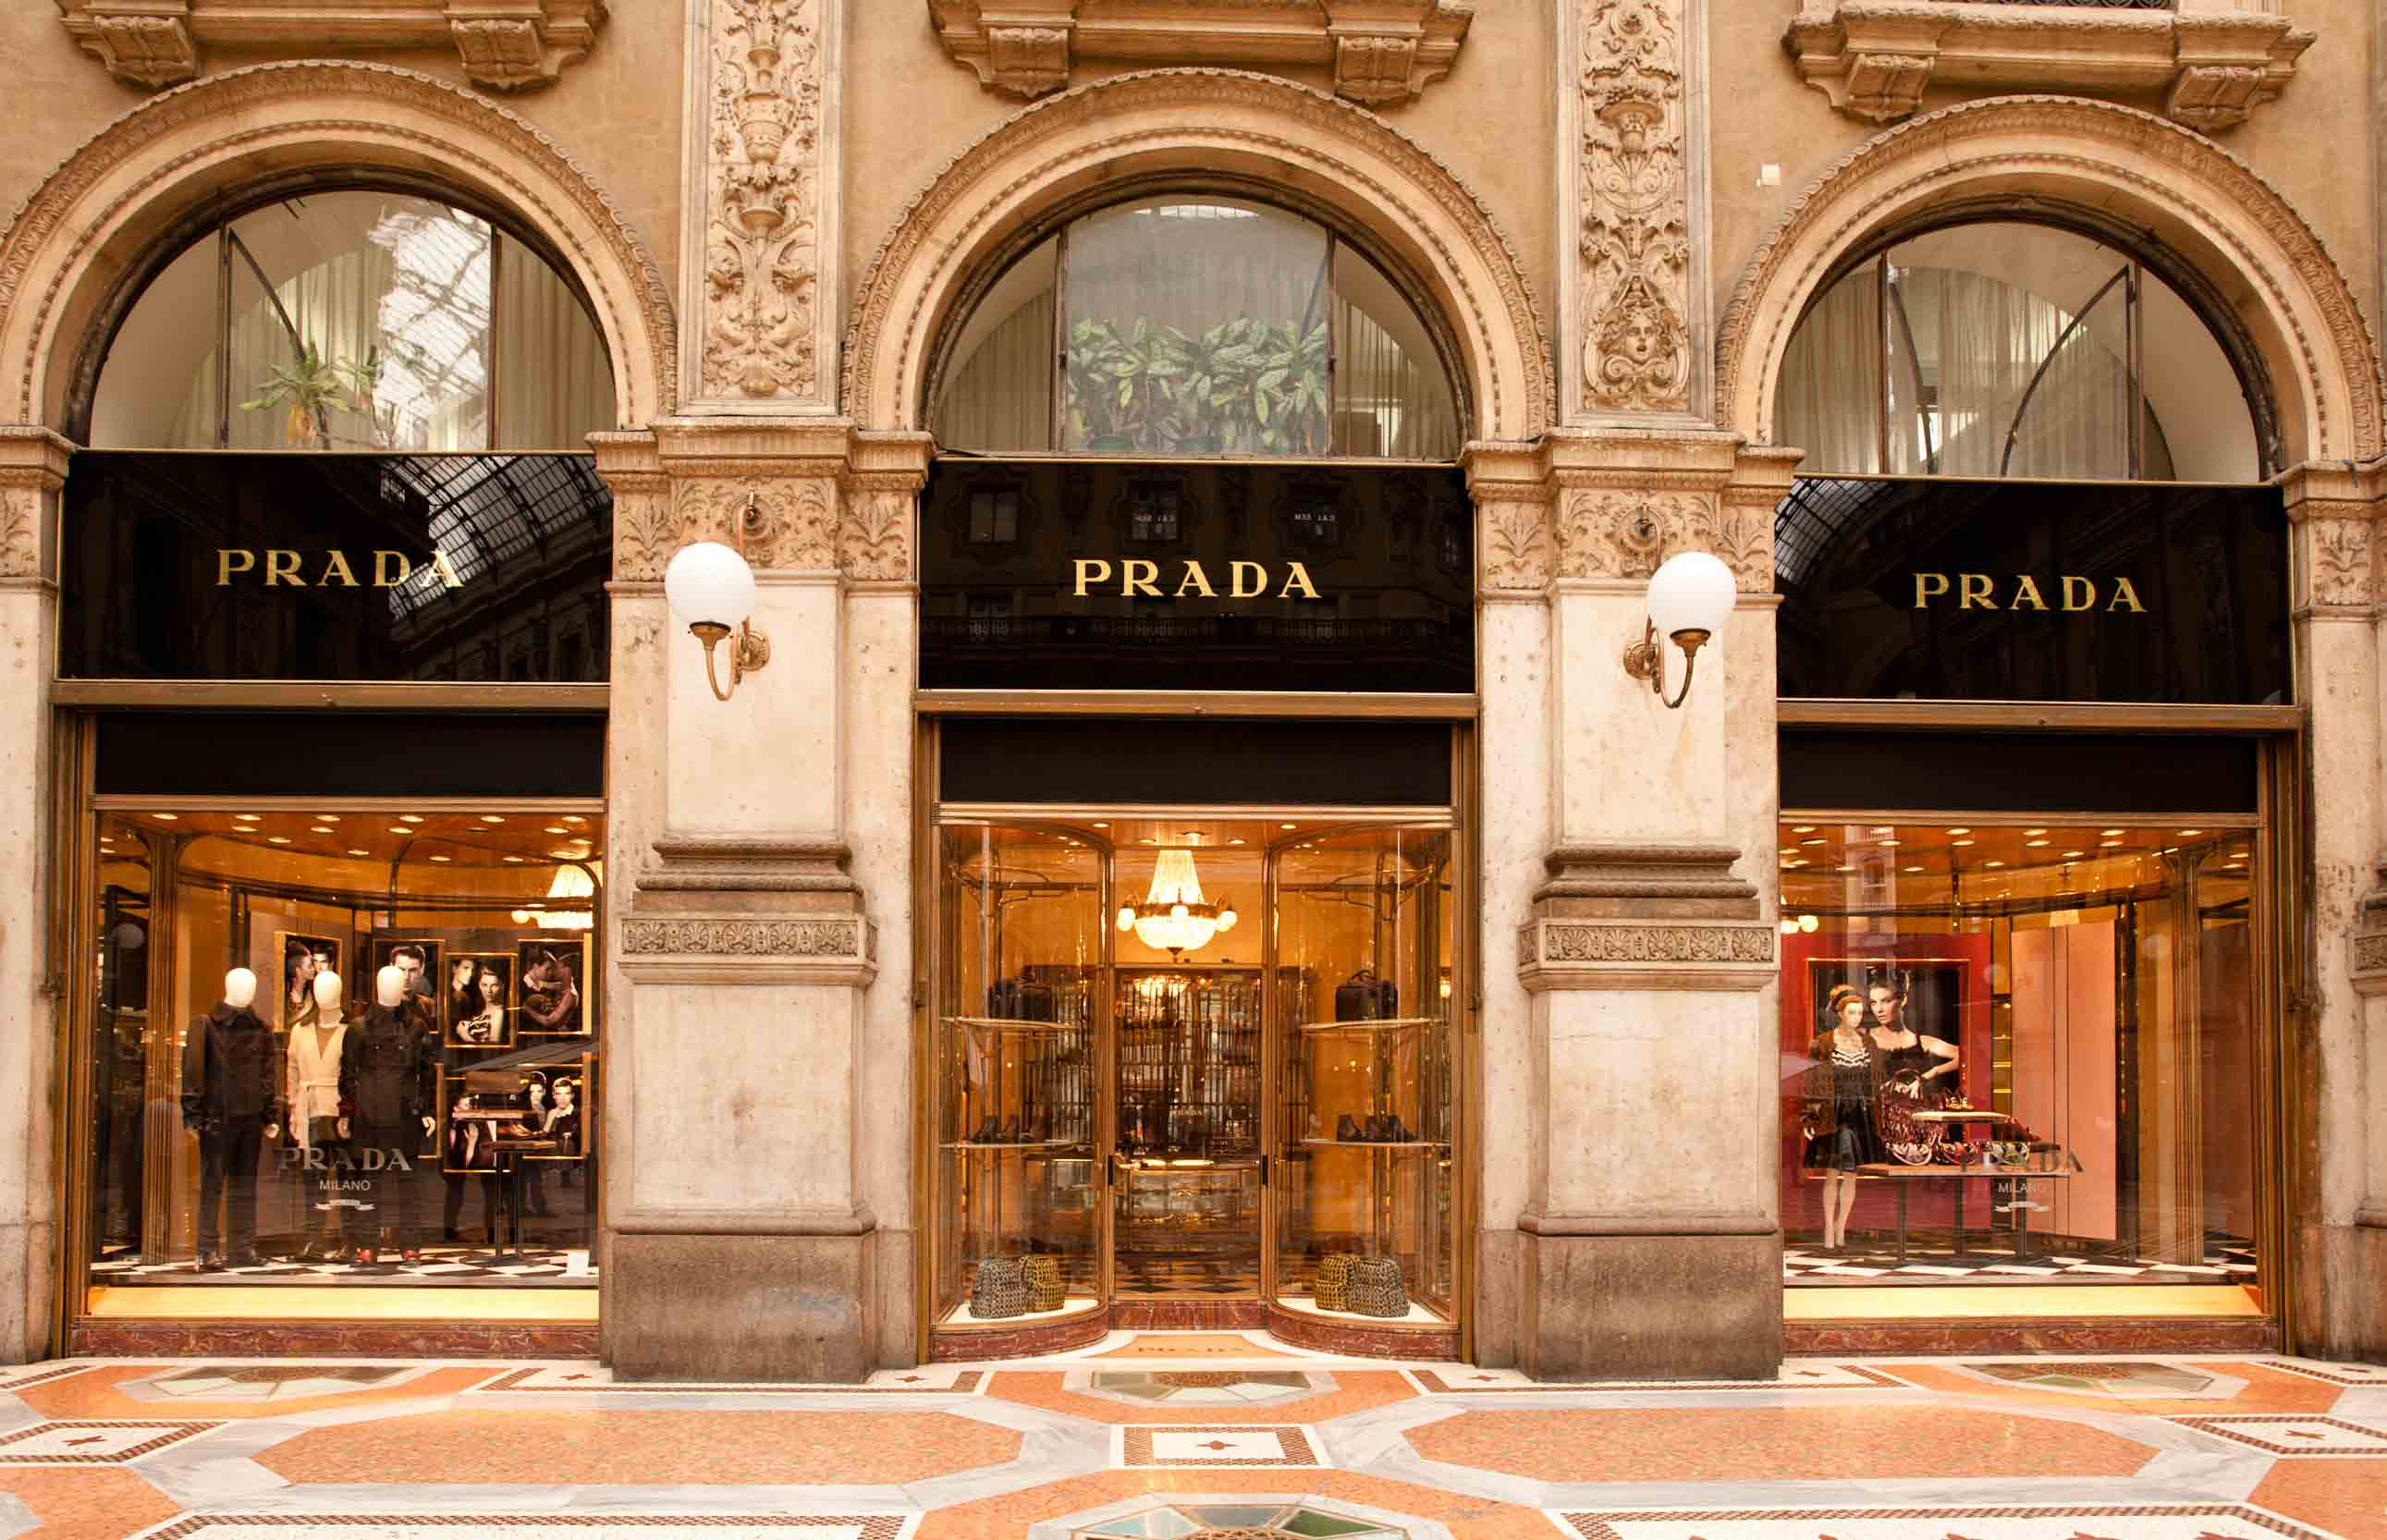 Prada sales are hard to come by — but there are ways to get those designer duds for less.